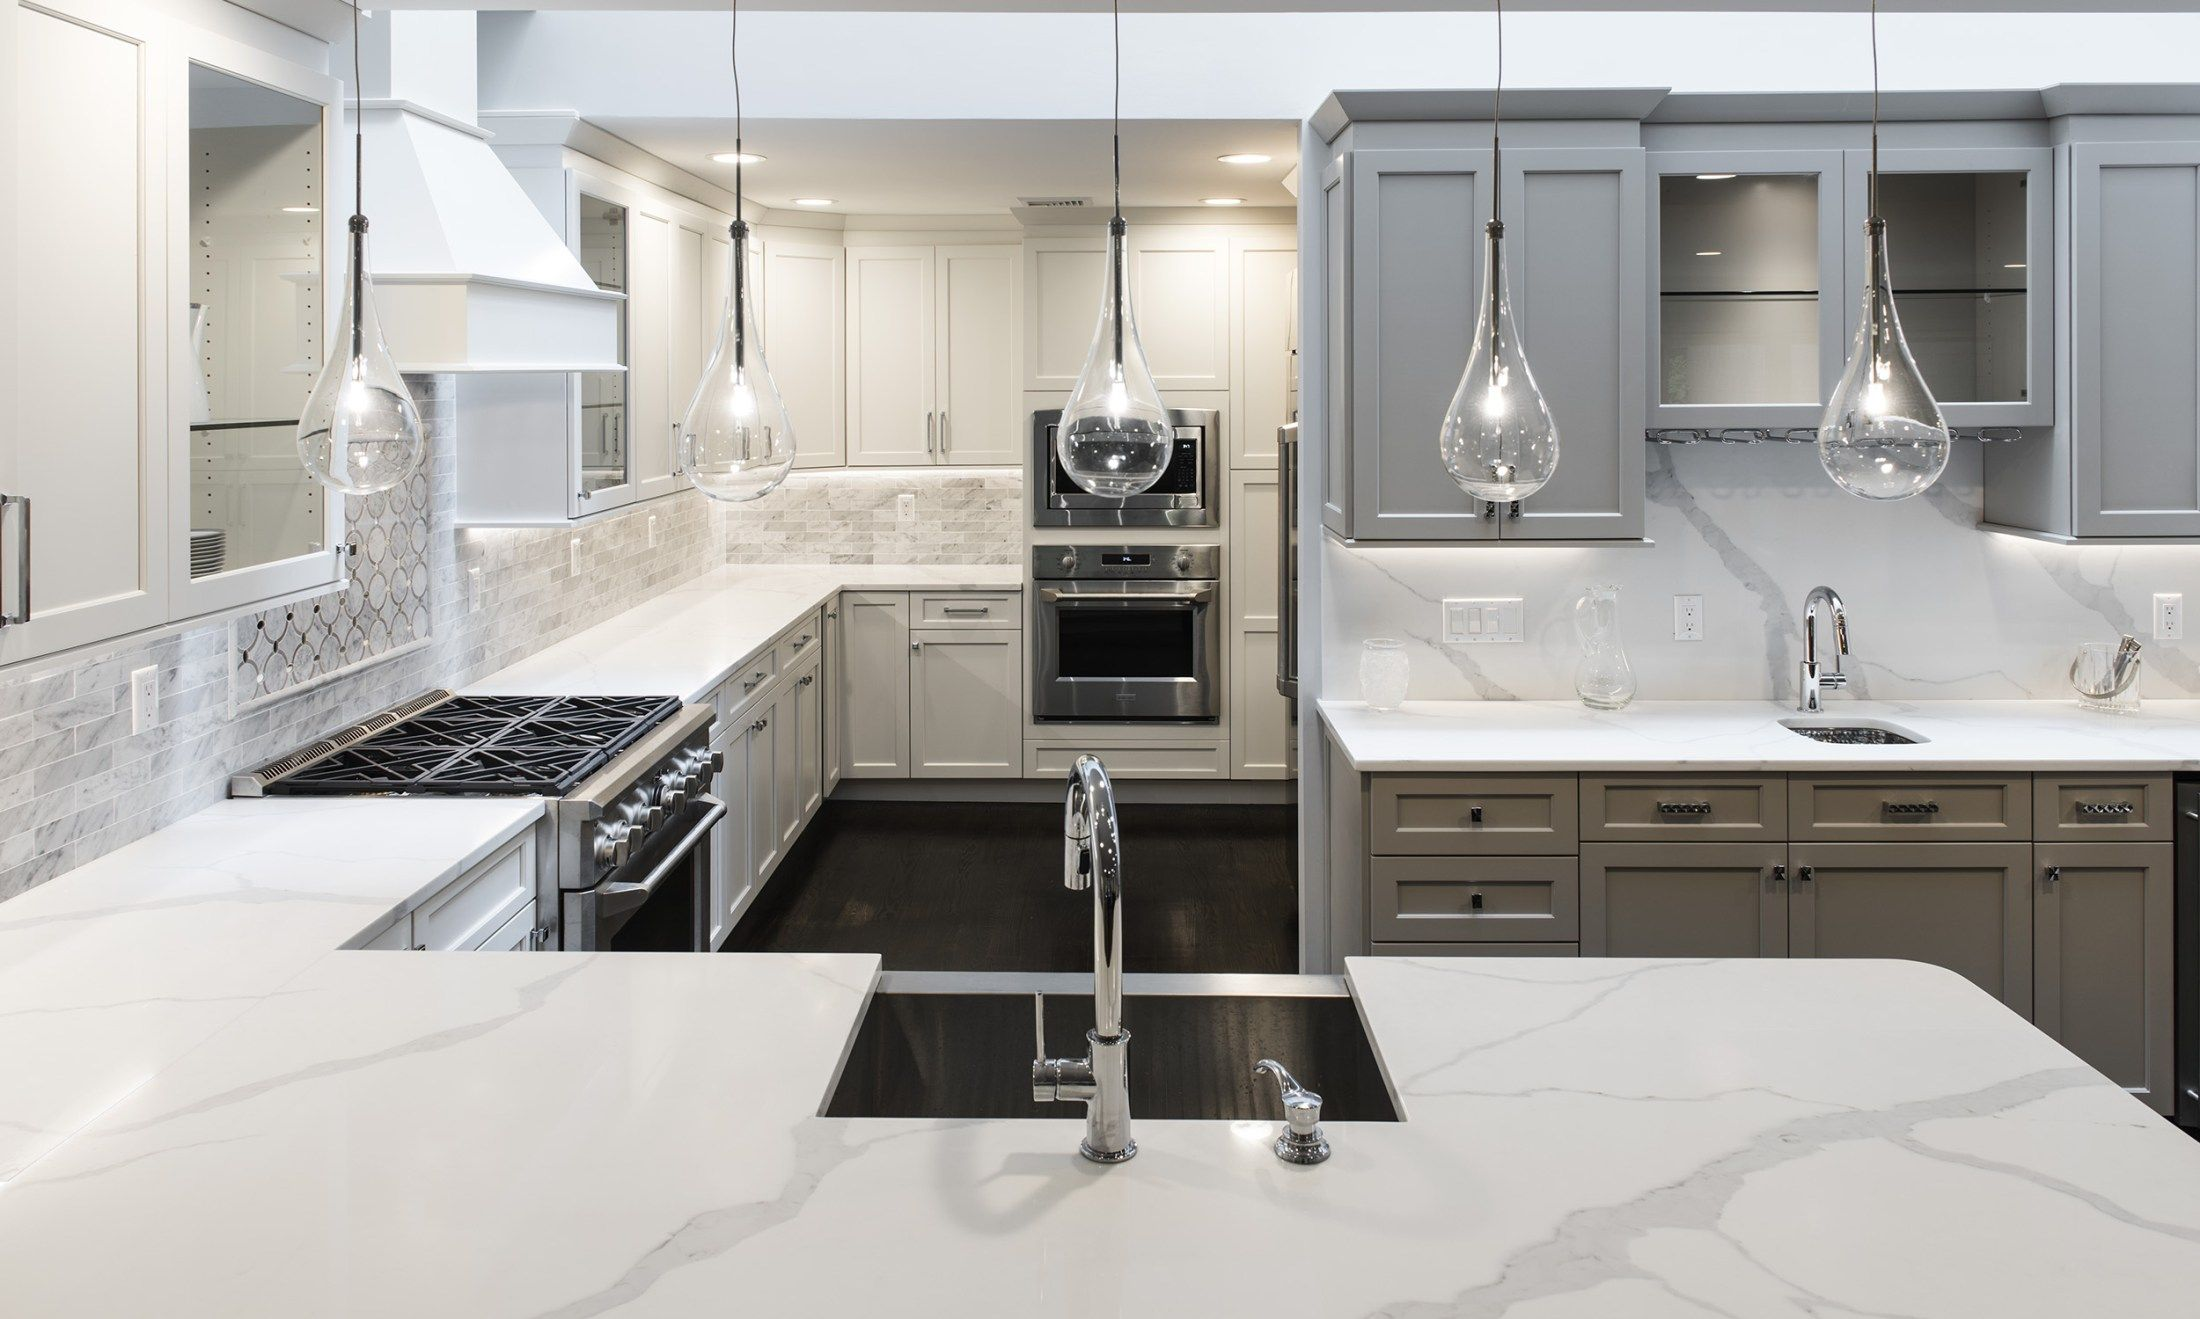 This Aurea Stone Divine Quartz Countertop Is Now In Stock At Dwyer